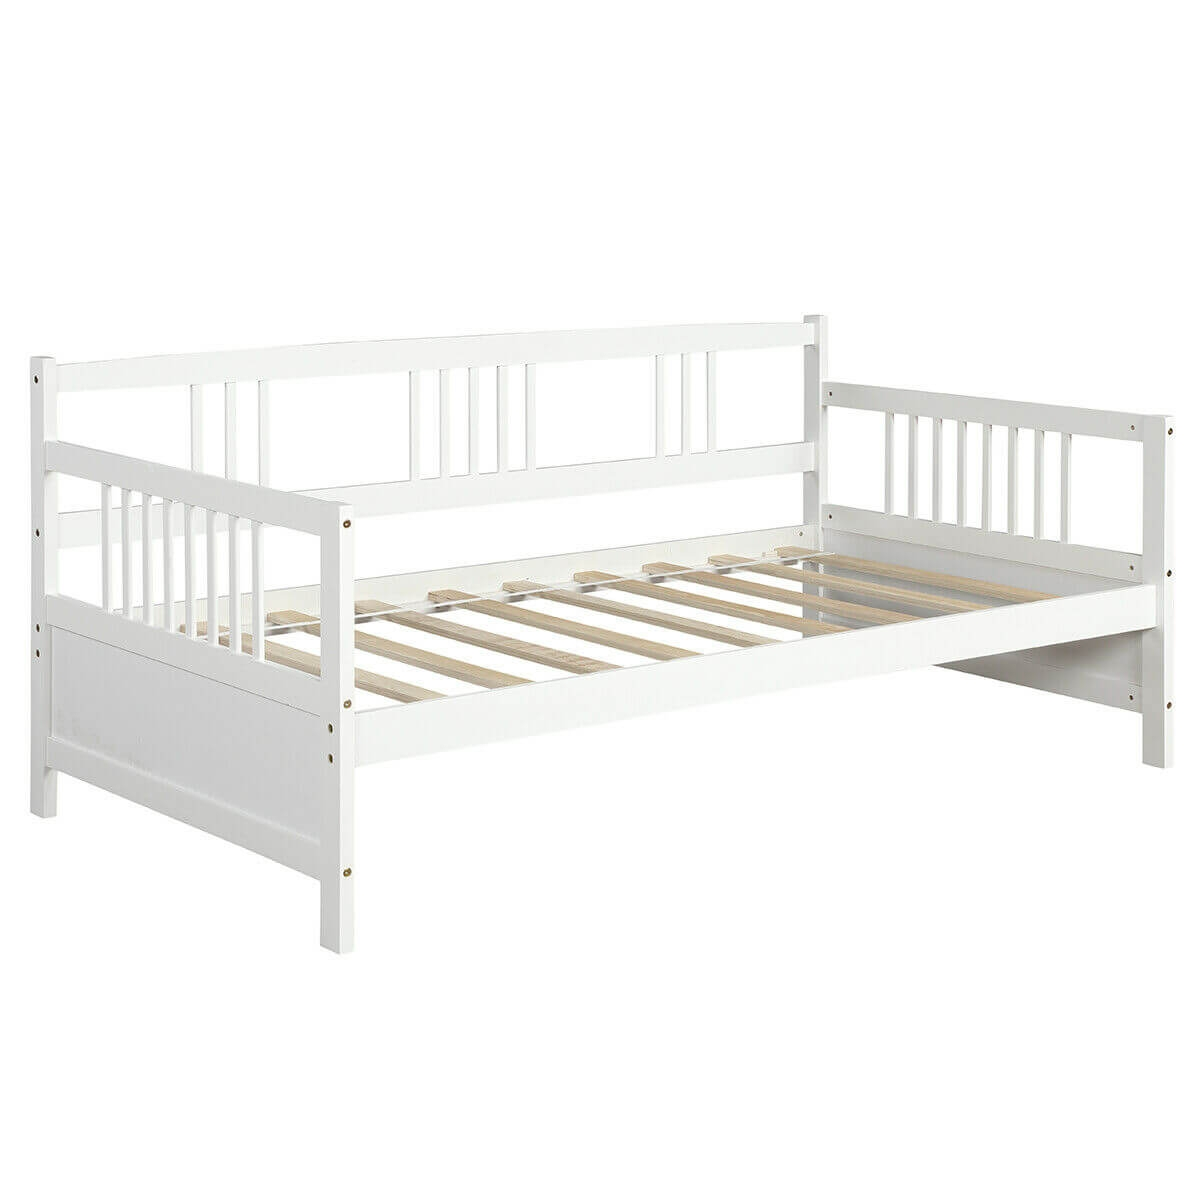 Image of Twin Size Wooden Slats Daybed Bed with Rails